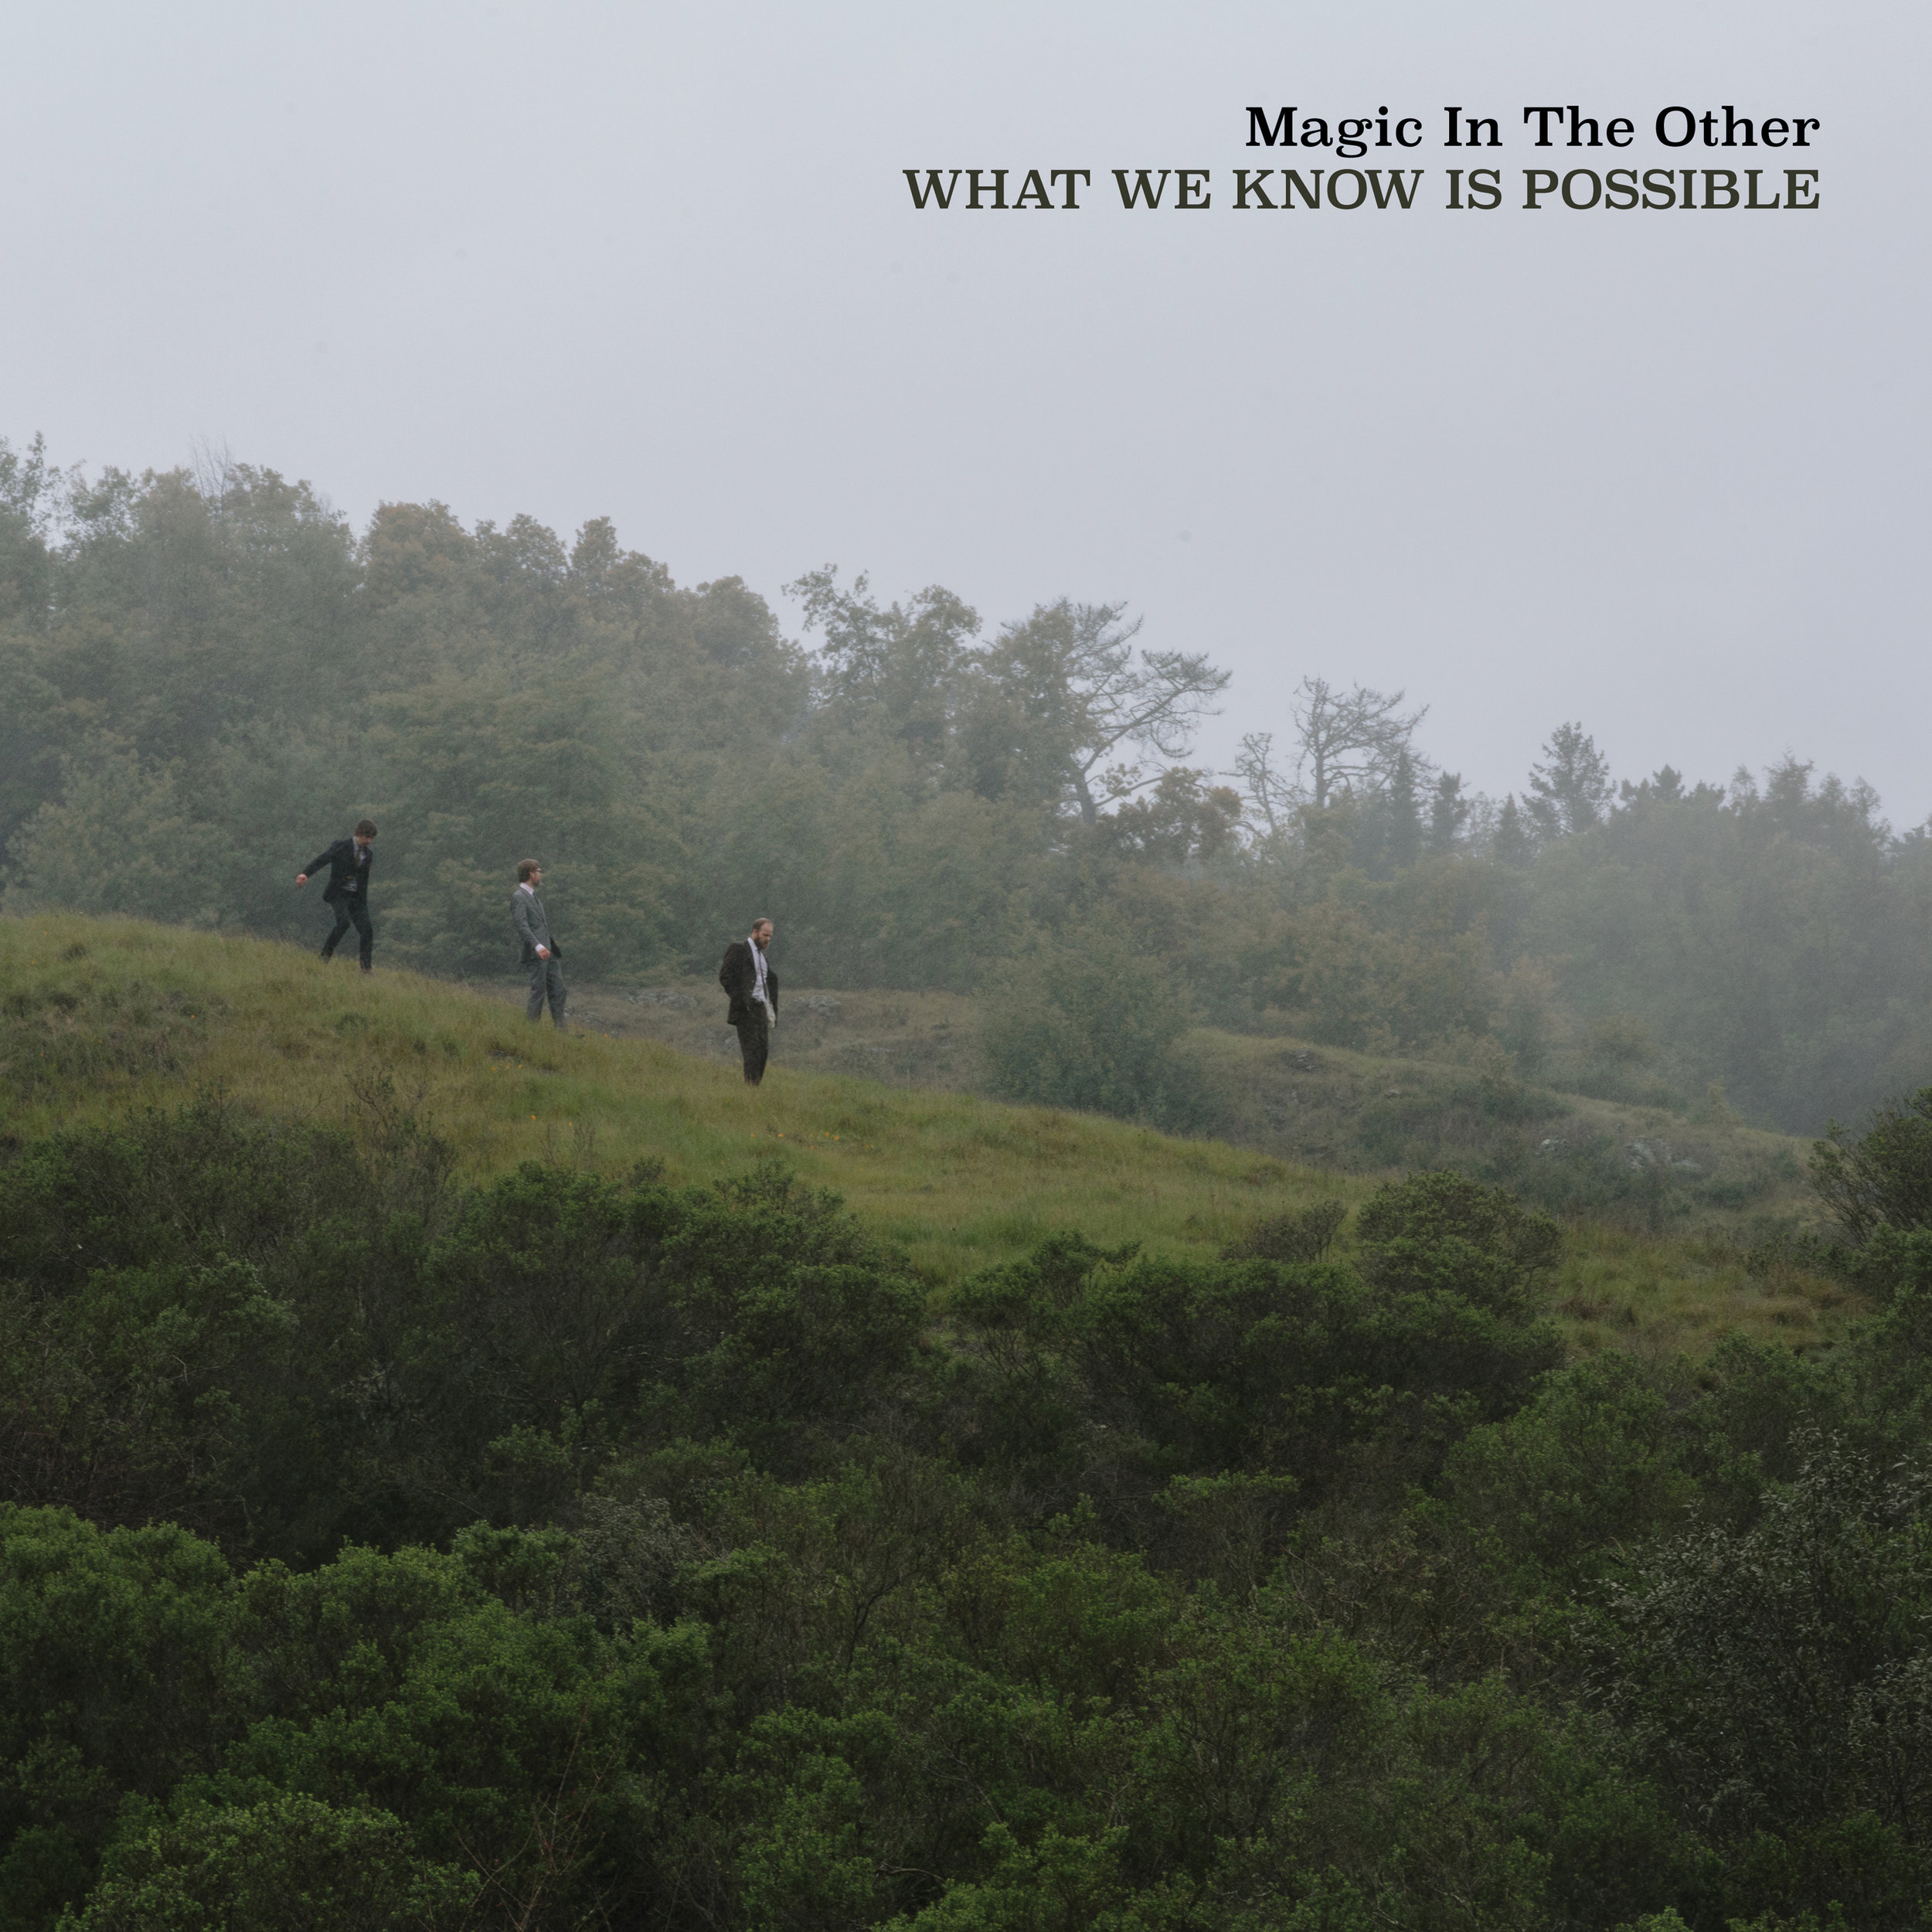 Magic In The Other - What We Know Is Possible